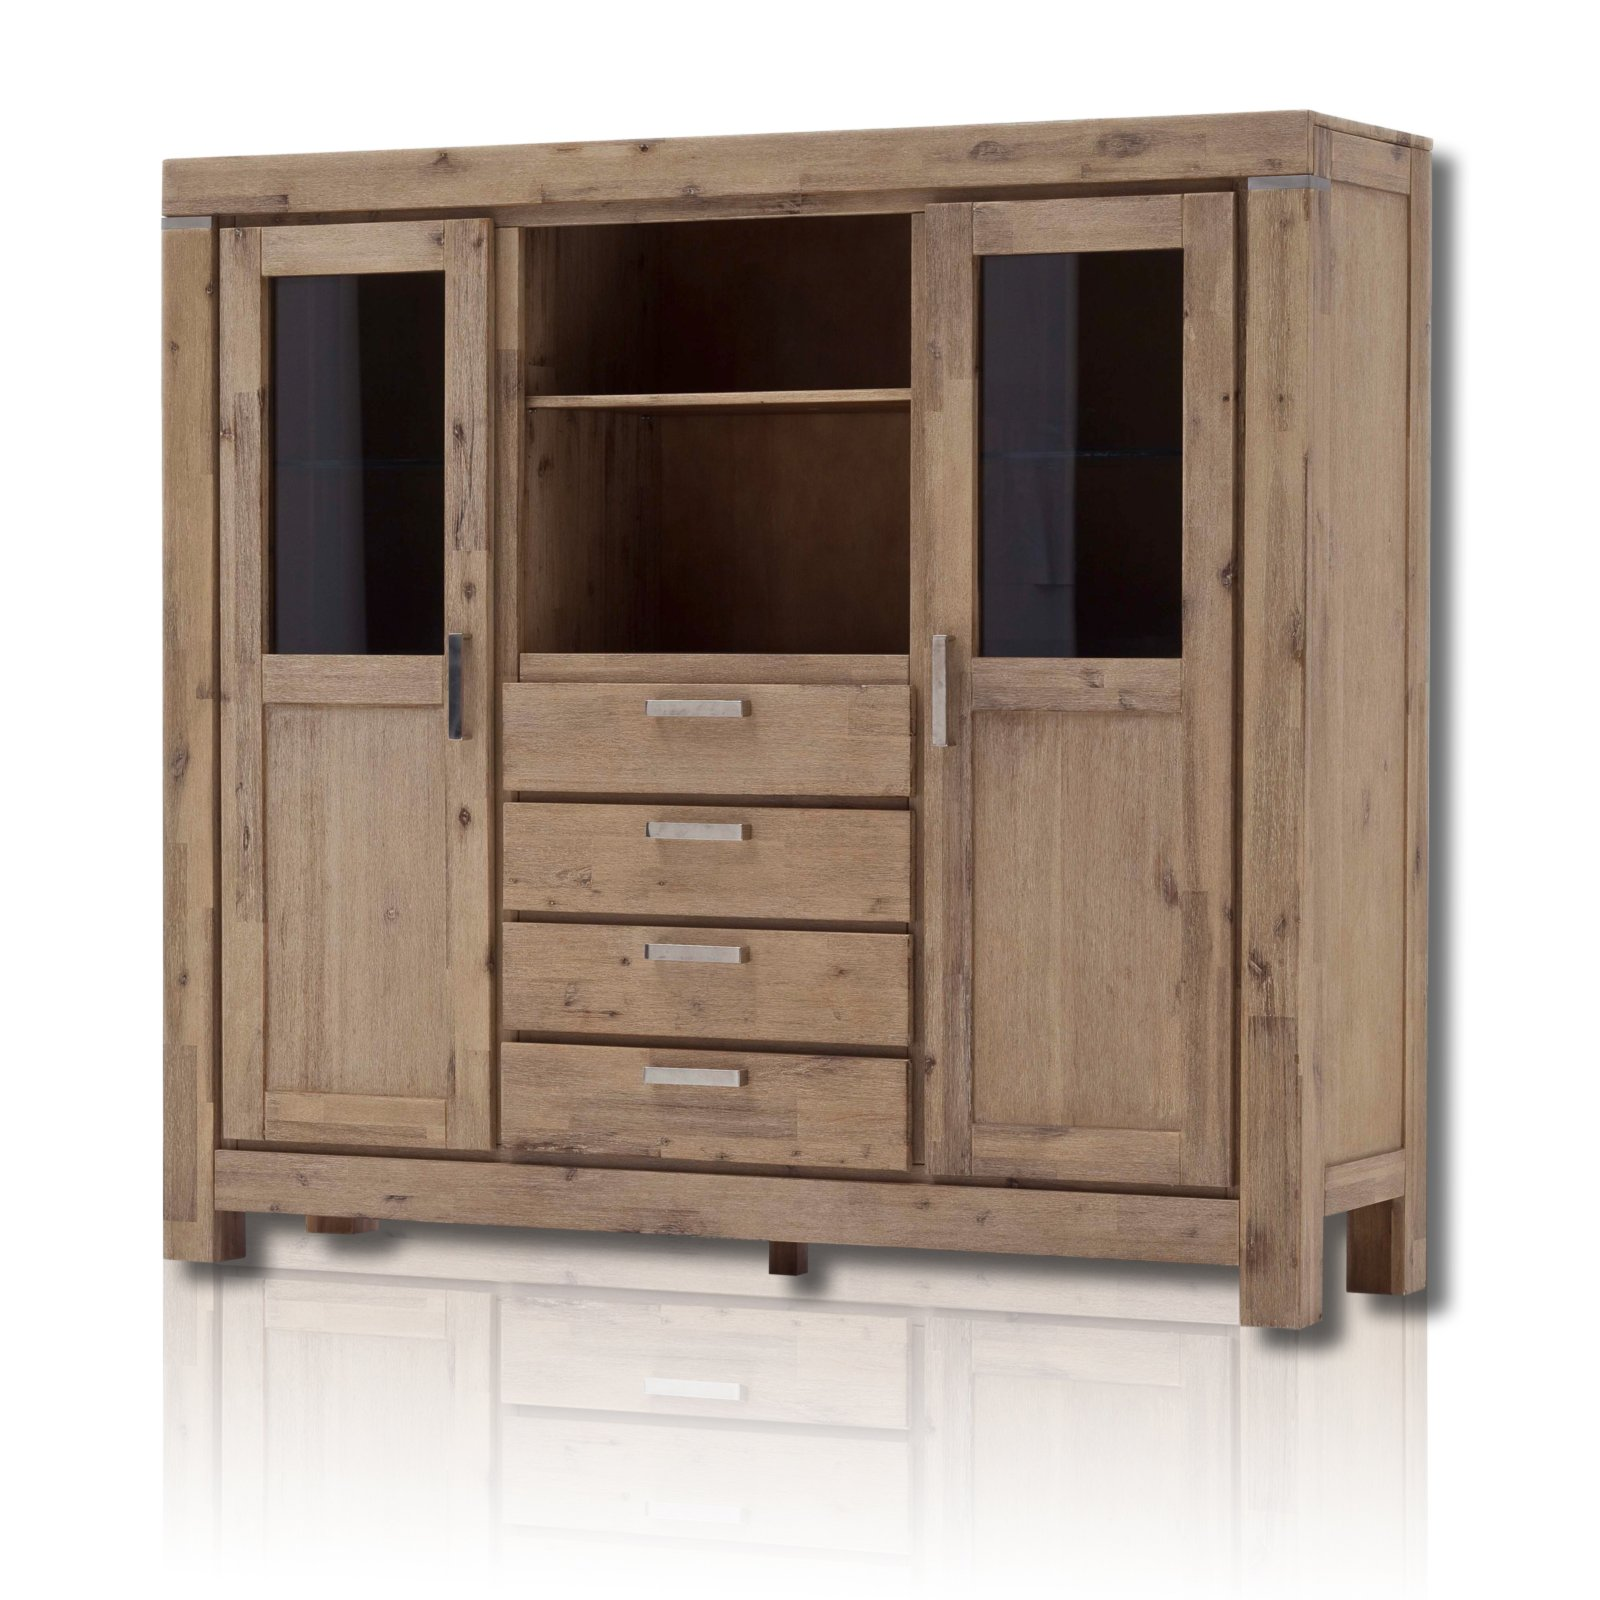 kommoden 30 cm tief ikea hurdal chest of 9 drawers plenty. Black Bedroom Furniture Sets. Home Design Ideas